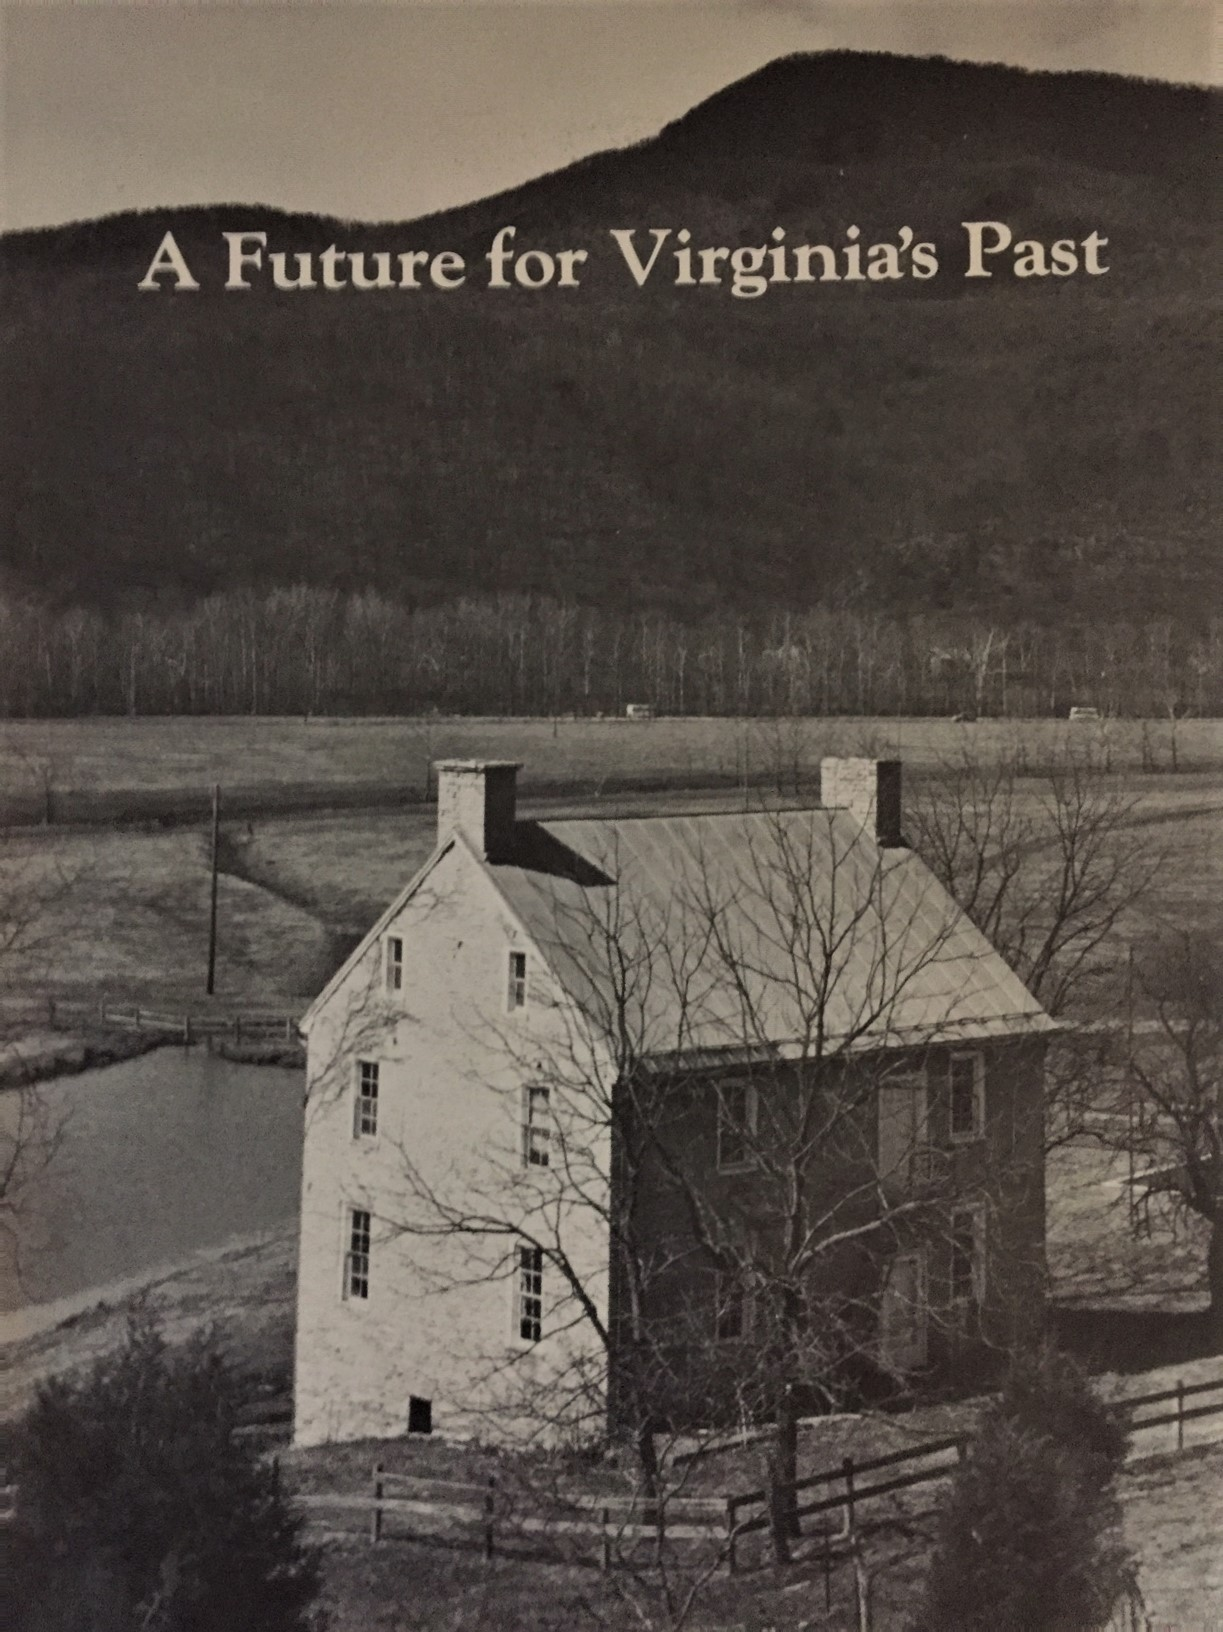 A Future for Virginia's Past